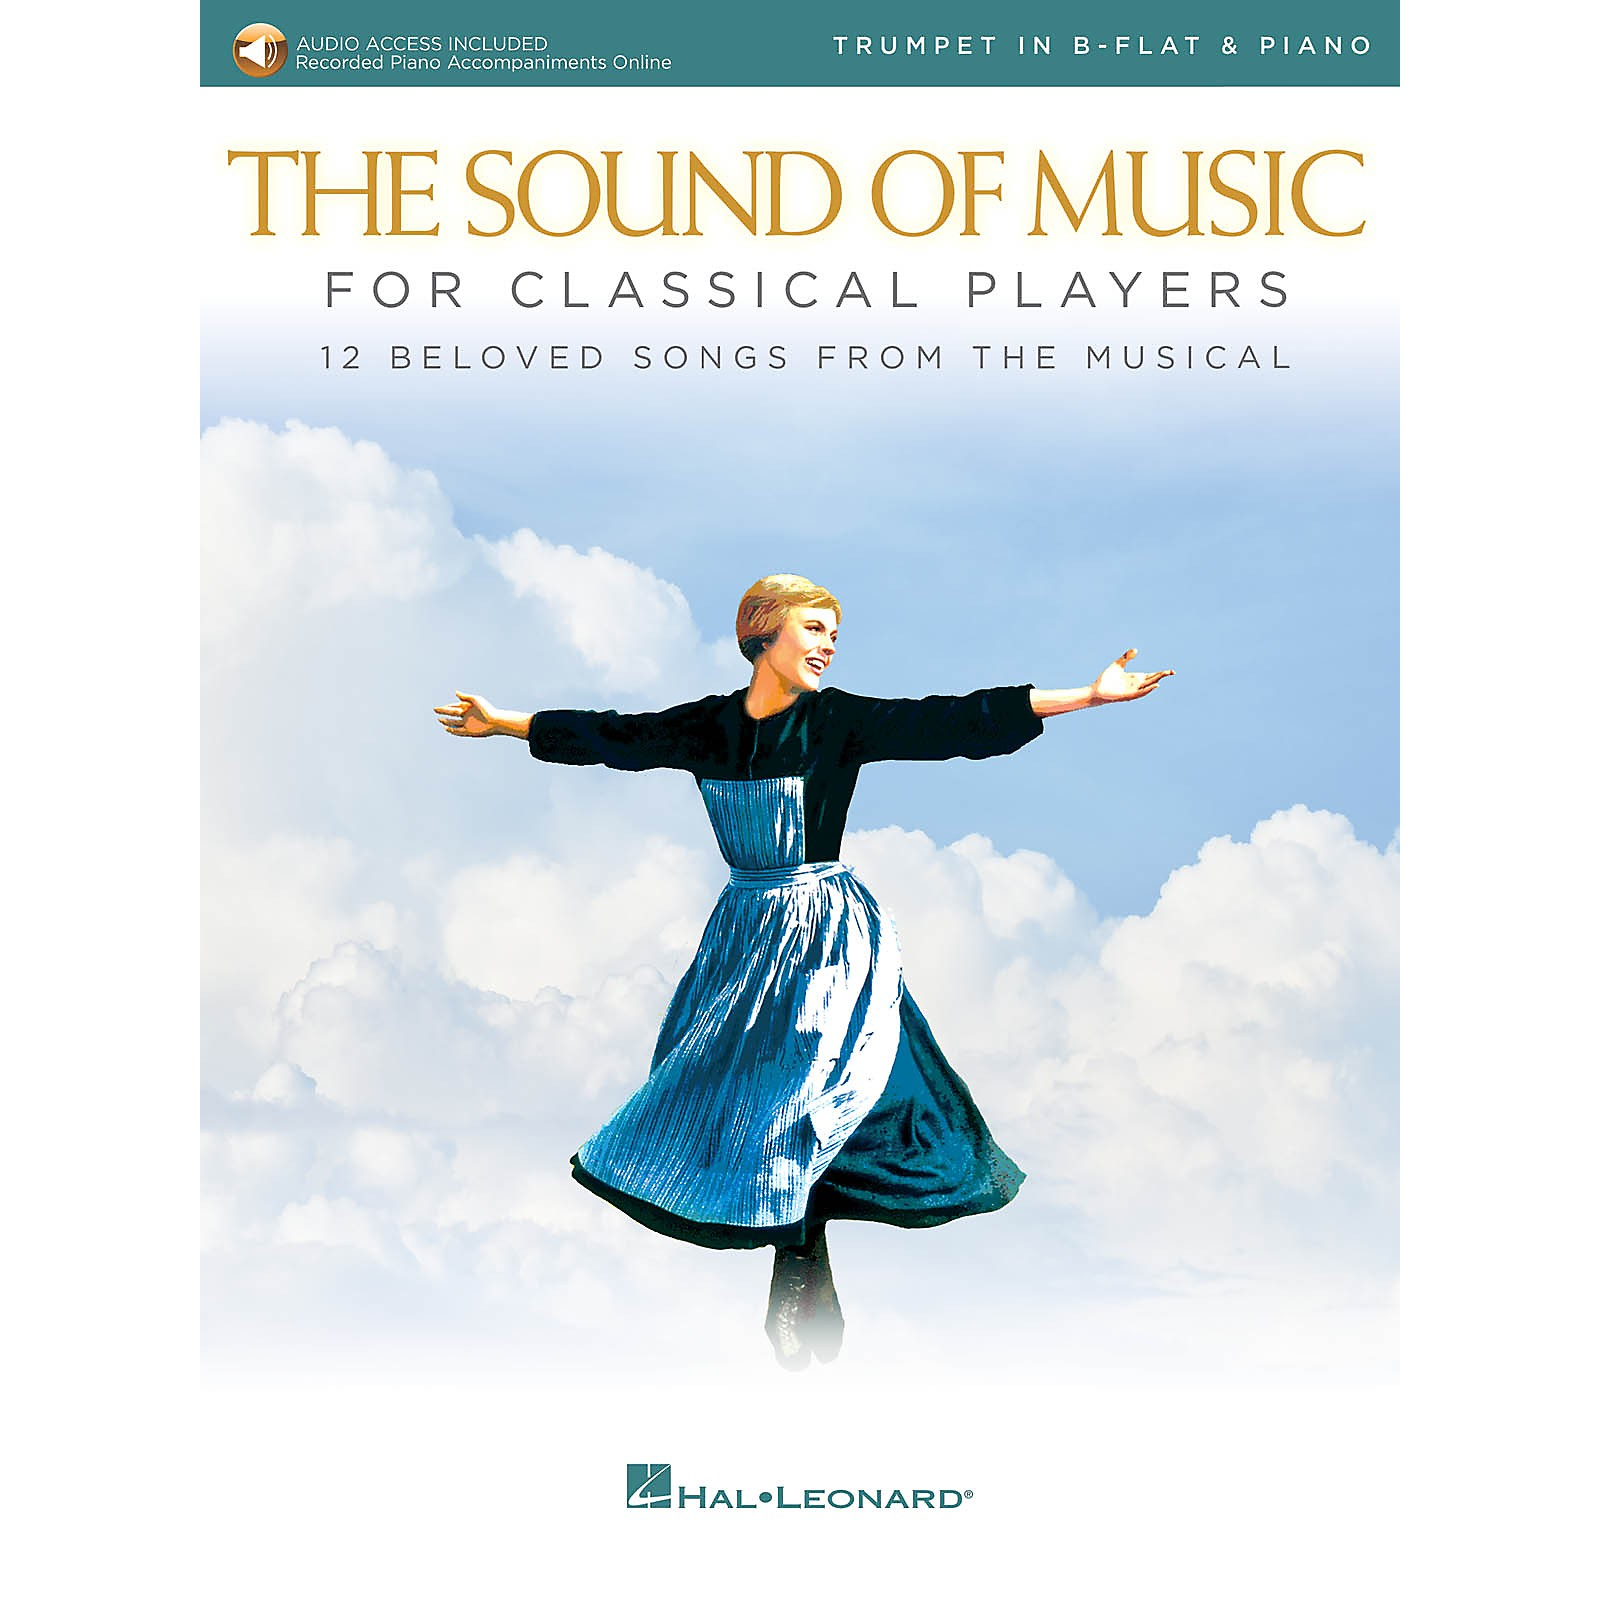 Hal Leonard The Sound of Music for Classical Players - Trumpet and Piano Book/Audio Online